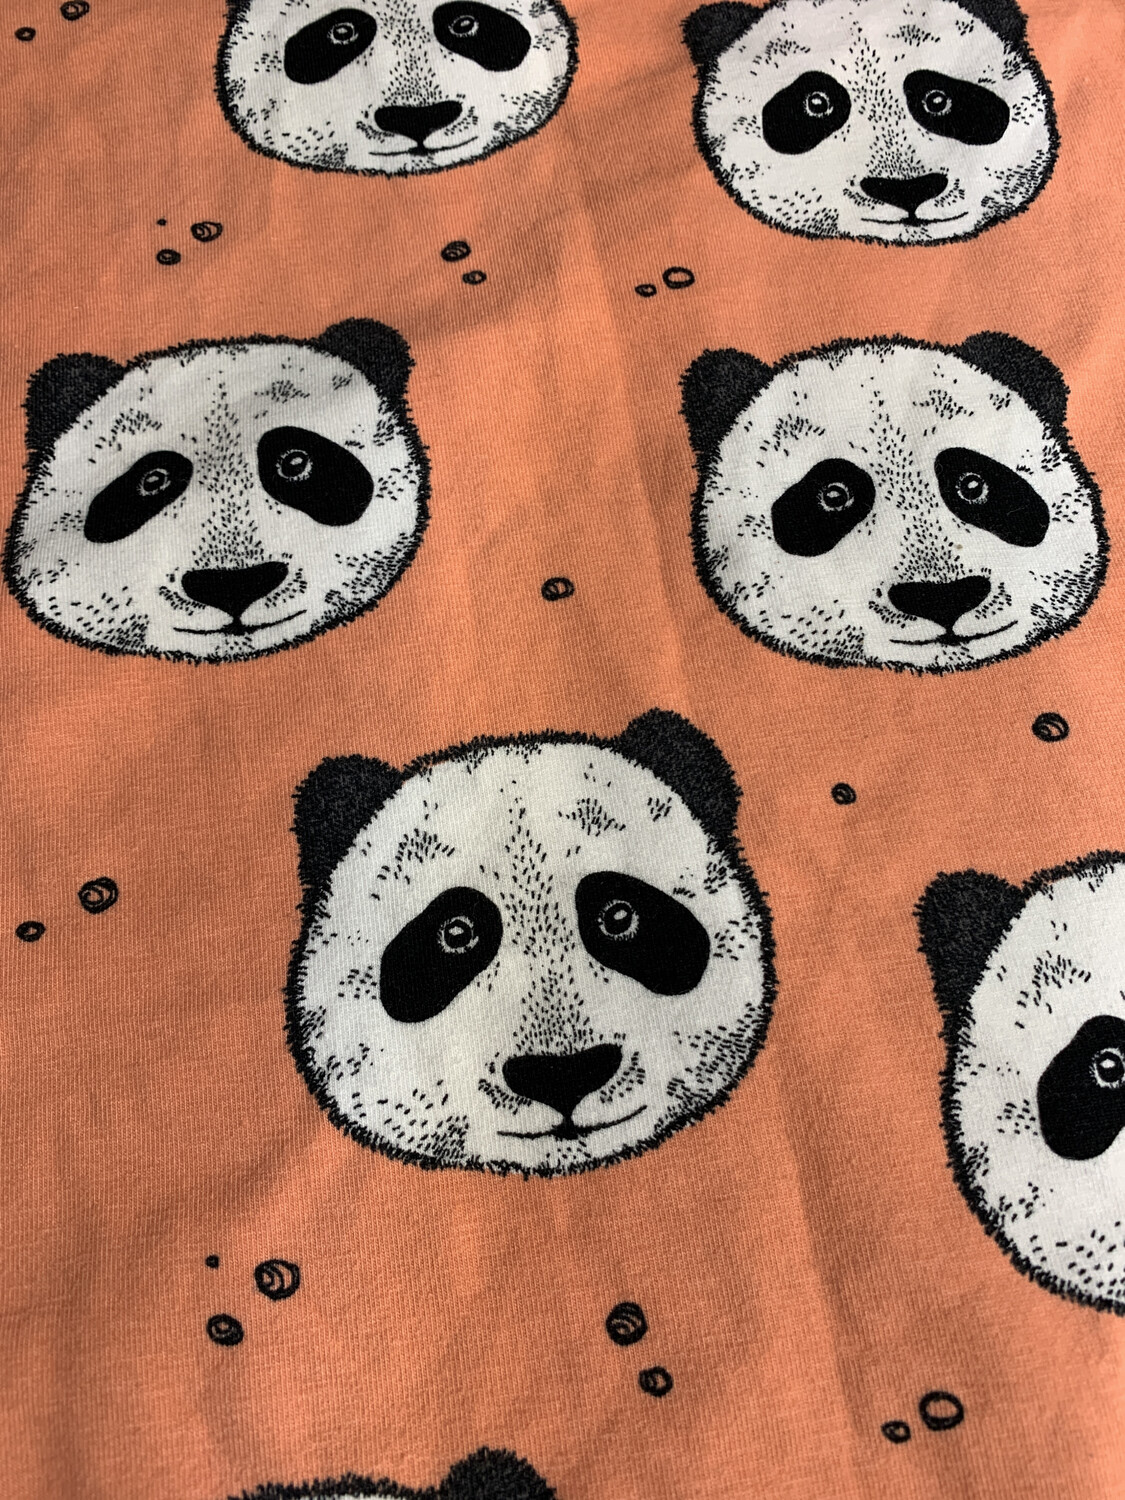 Coral Panda Baby Leg Warmers - alternative cuffs available